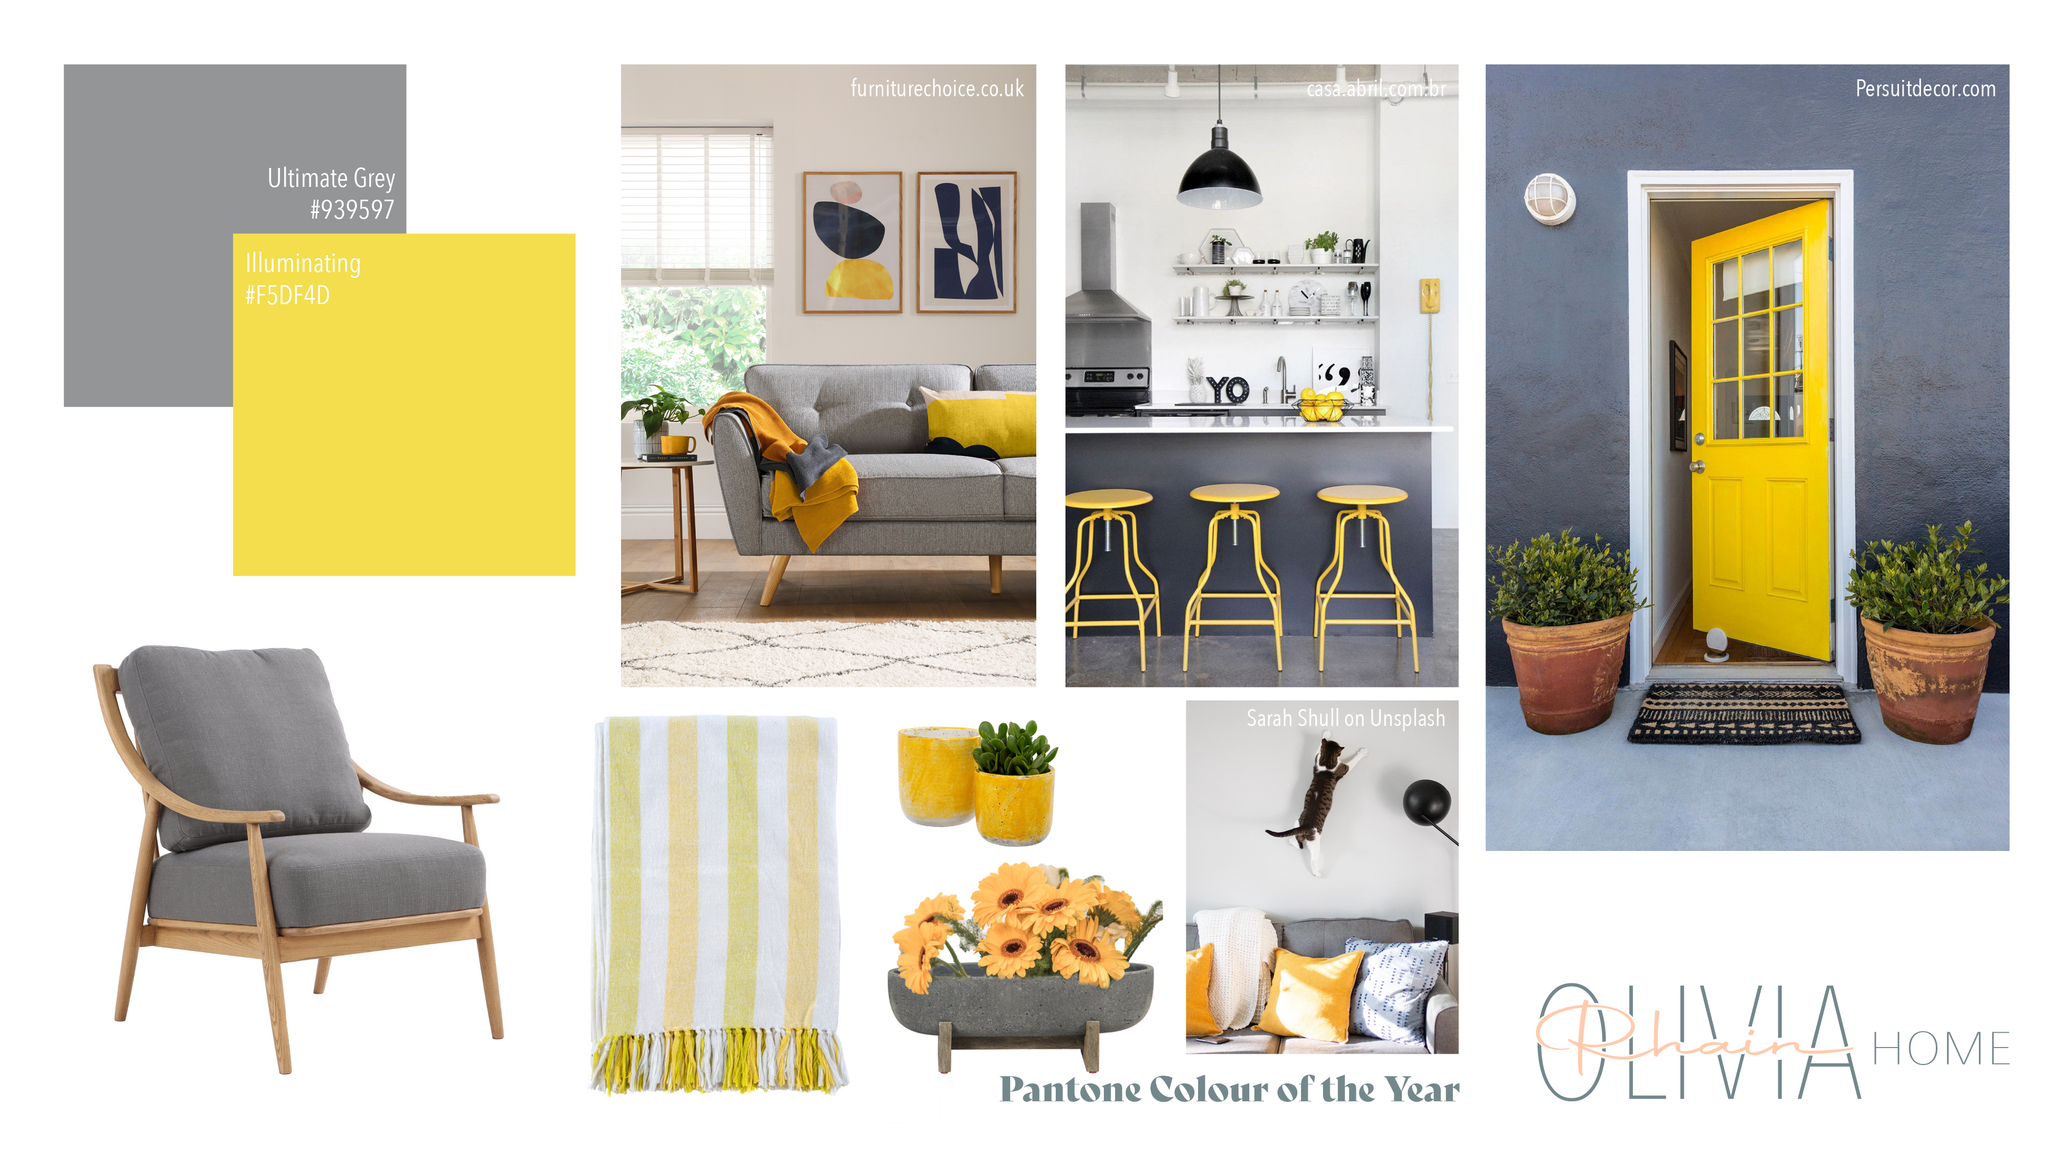 Pantone's Colour of the Year Mood Board